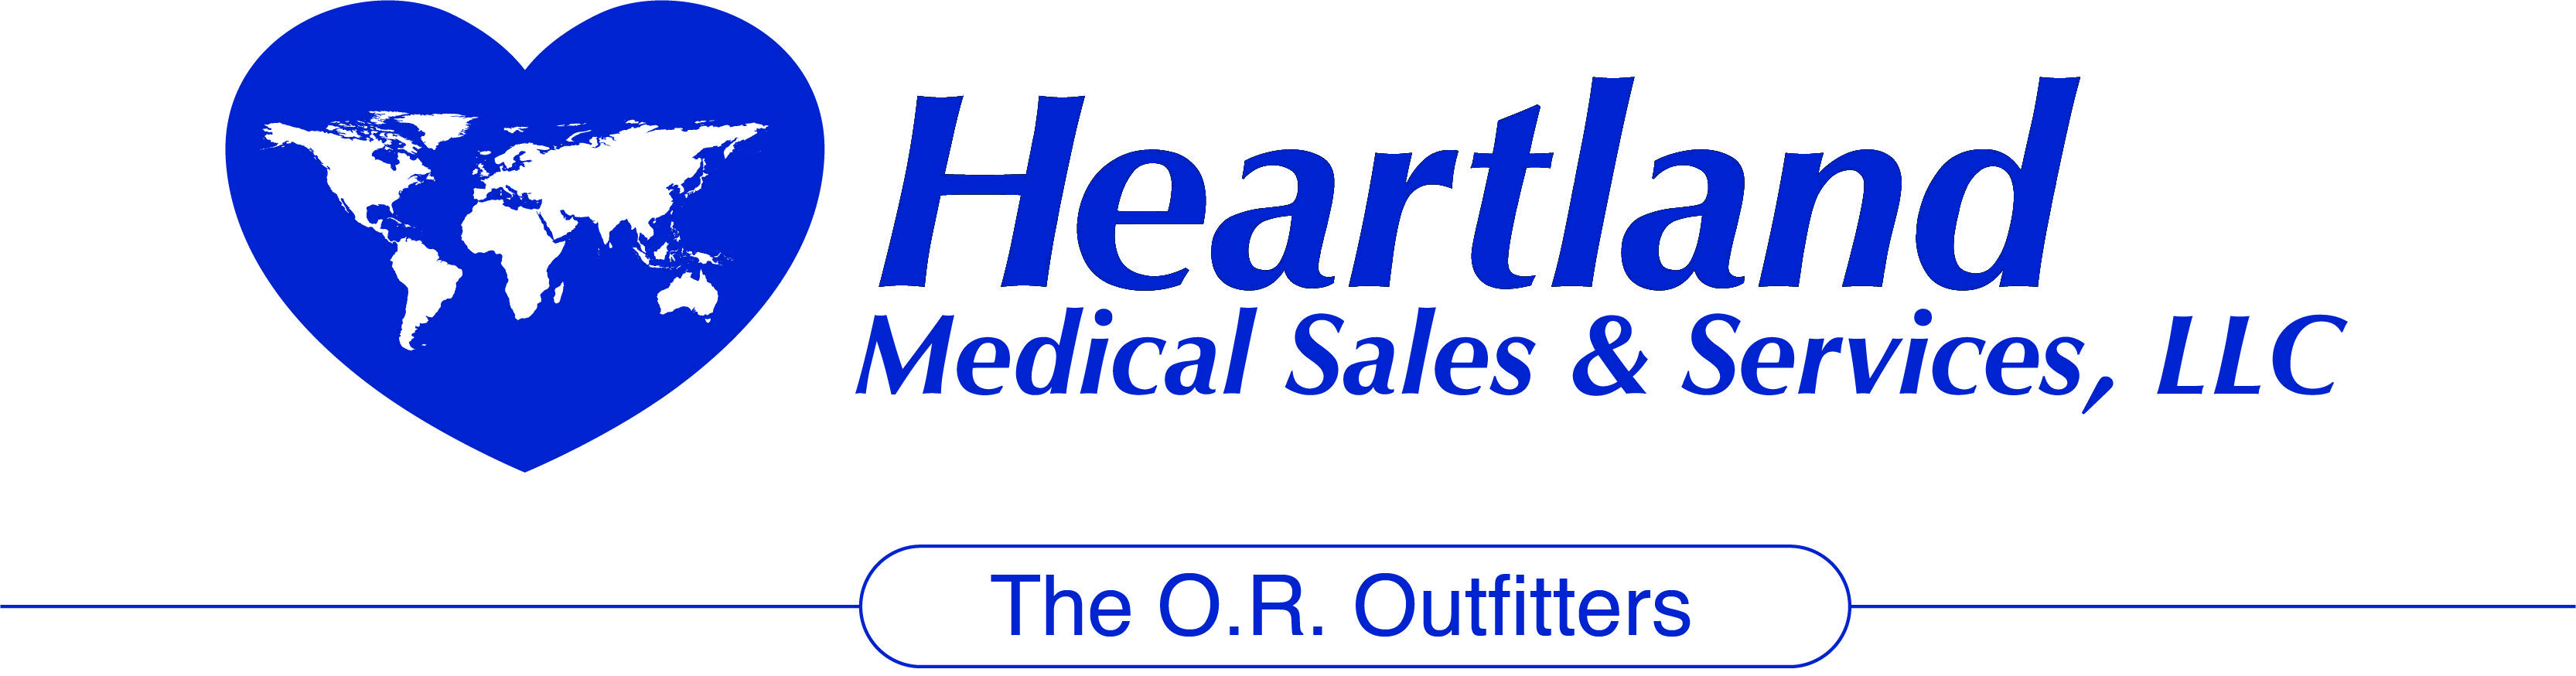 Medical Equipment Sales & Services – Heartland Medical